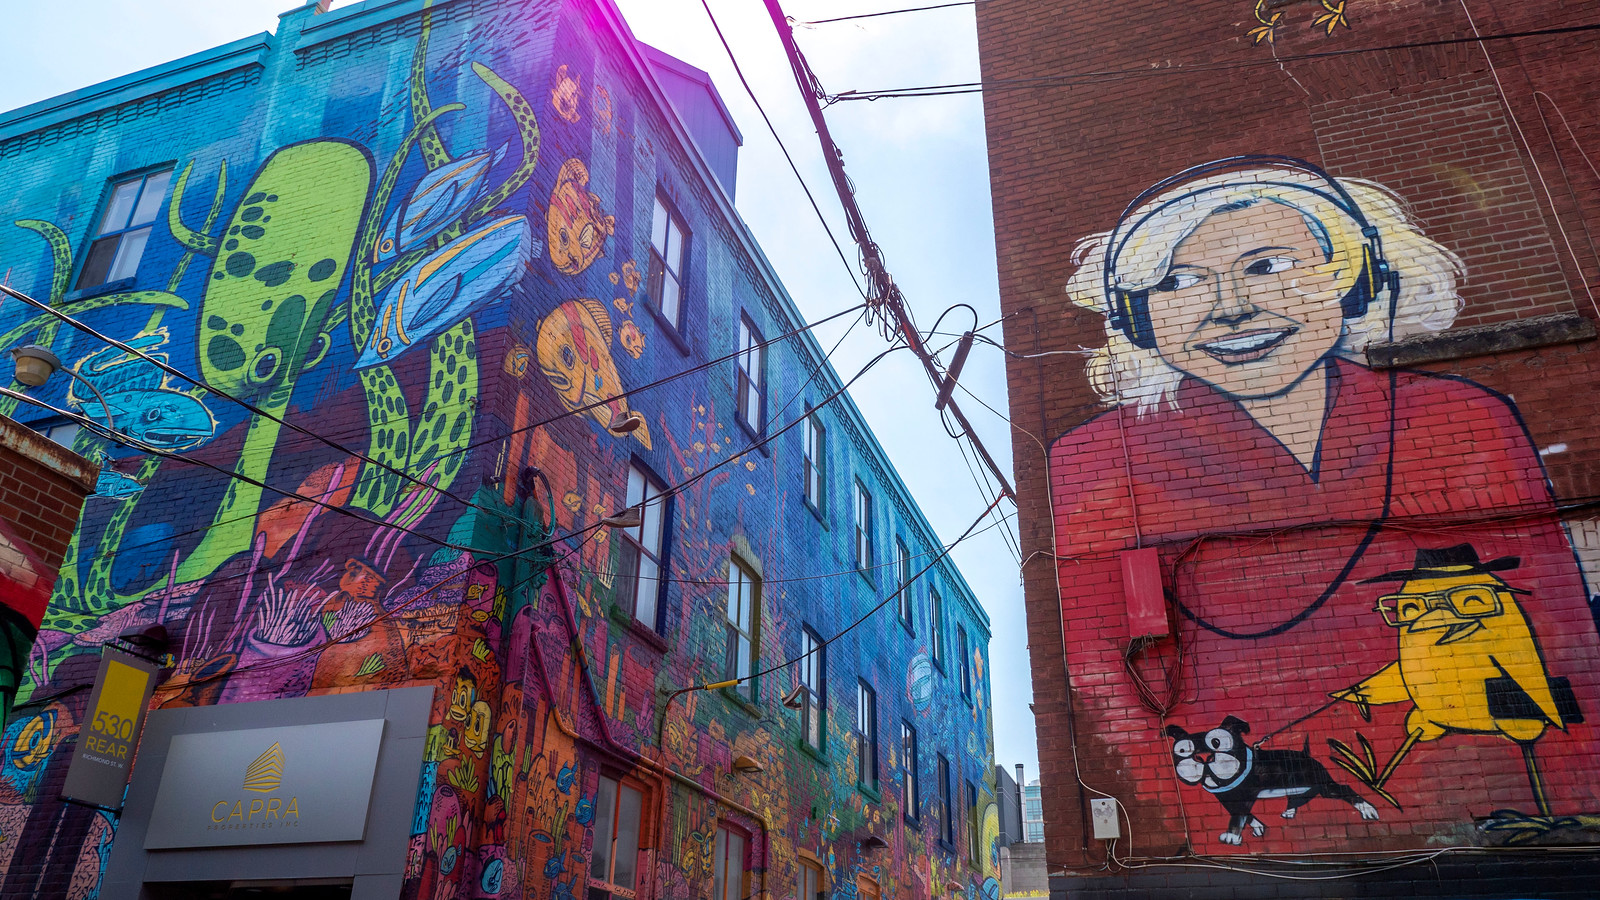 Toronto Street Art: Self Guided Tour of Toronto Murals